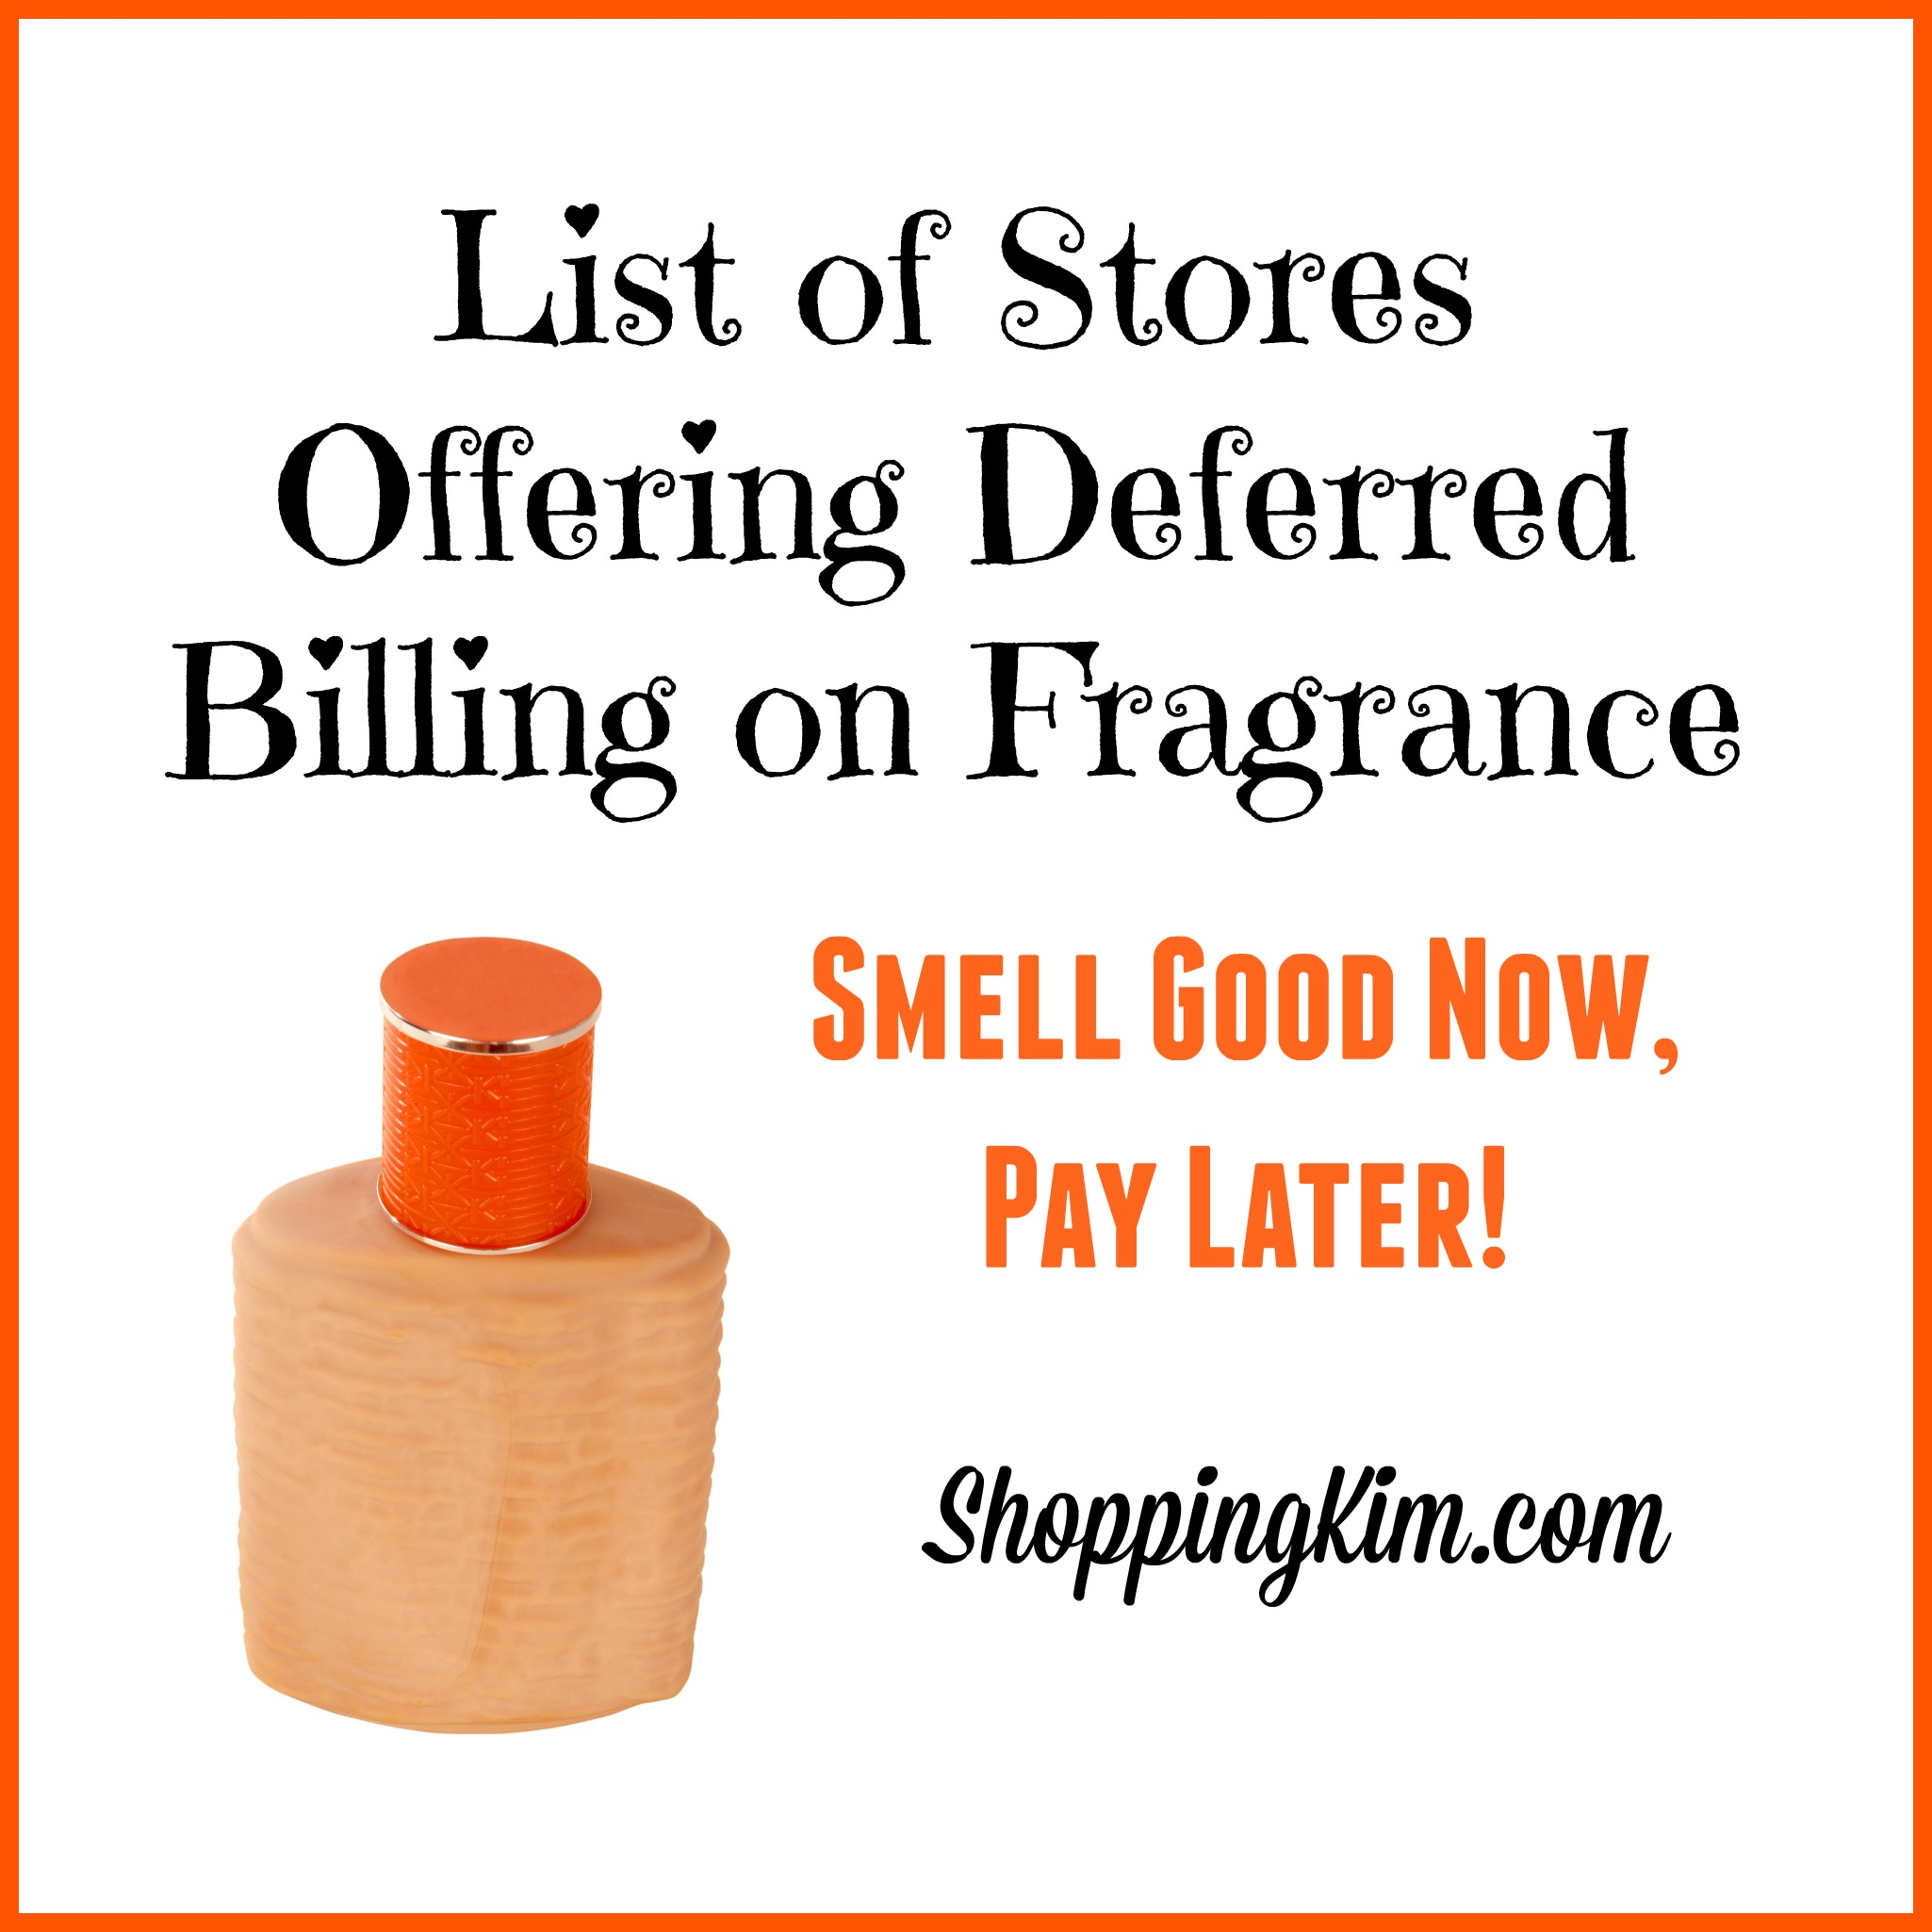 Buy Fragrance Now, Pay Later with Stores offering Deferred